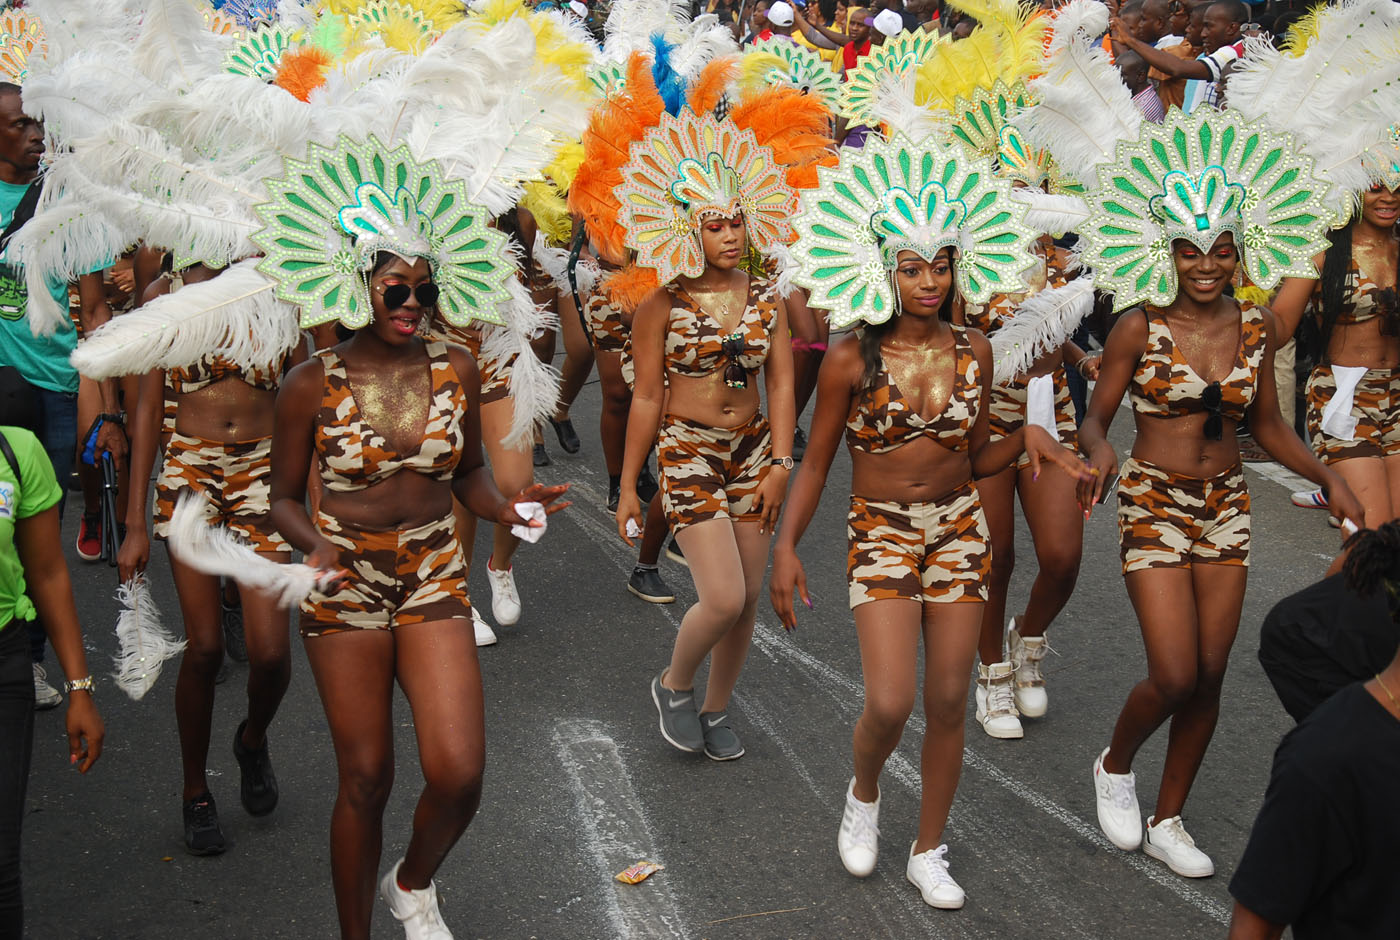 Members of Non-Competing Governor's Band during the Main Event of the 2017 Carnival Calabar in Cross River State Yesterday. Photo: Nwankpa Chijioke